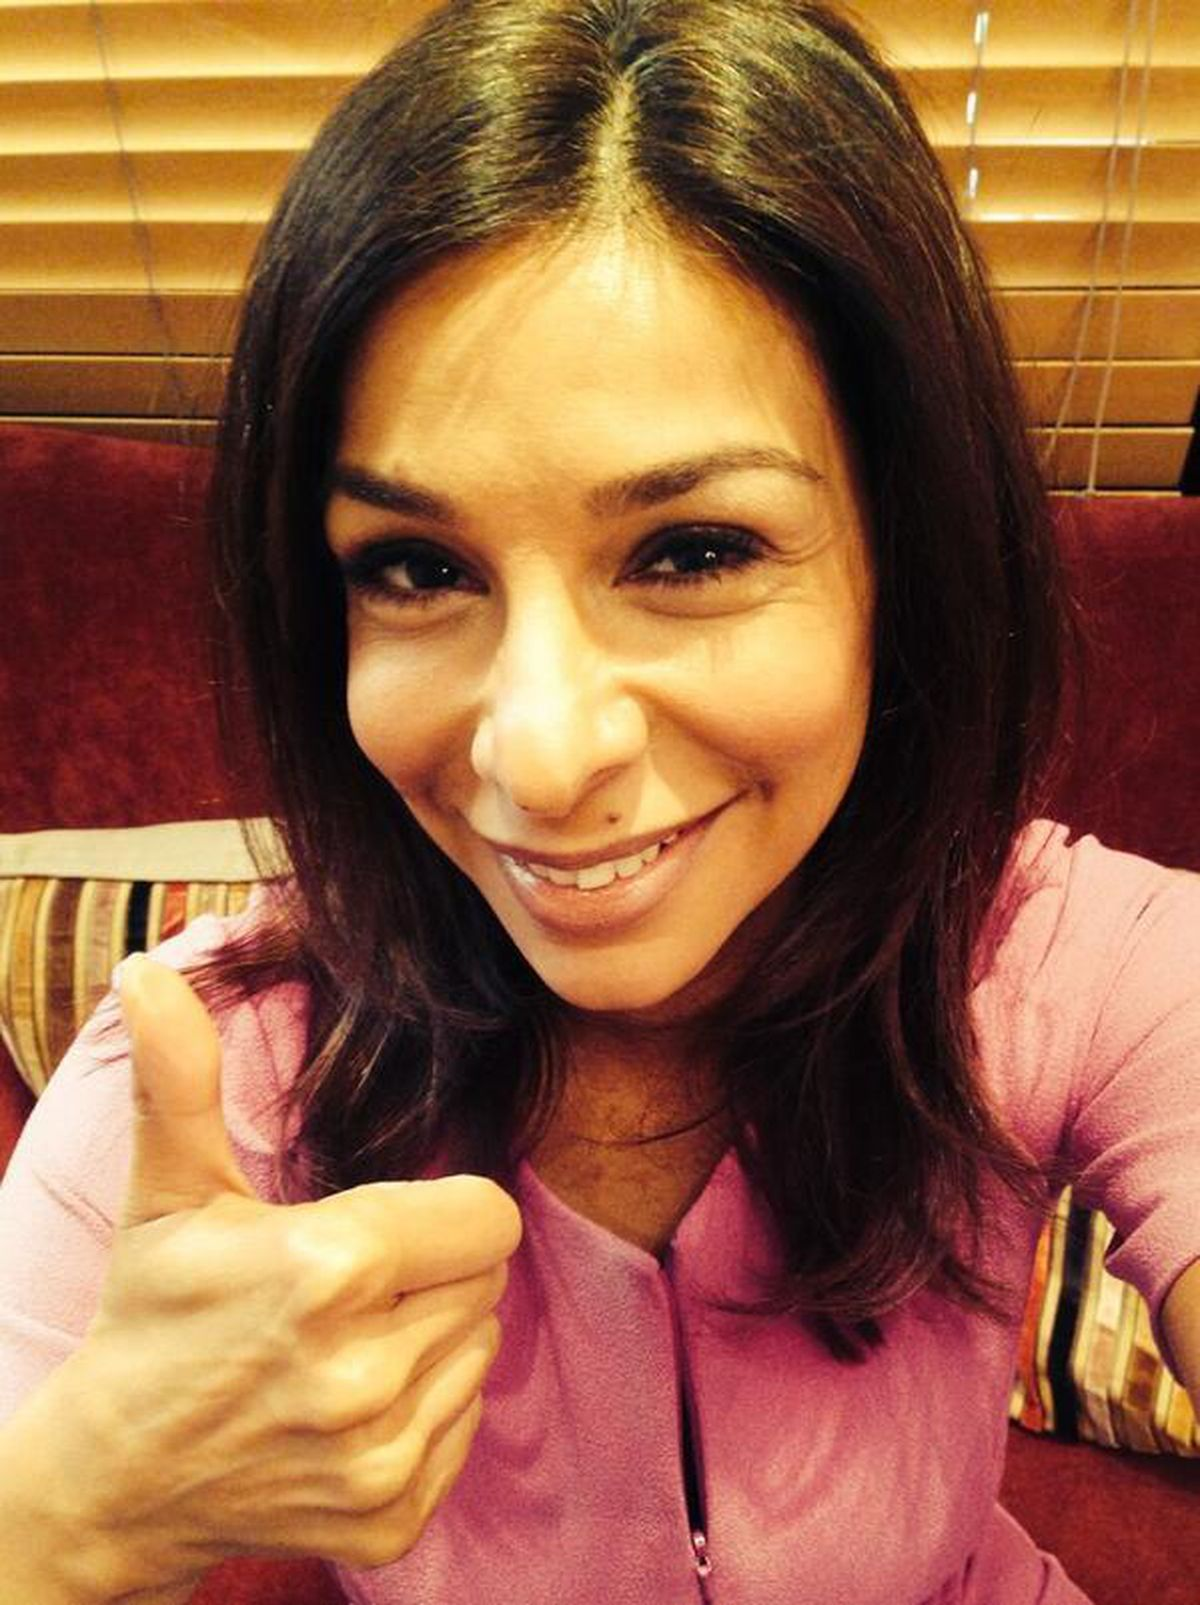 Shobna lends her support to the #ThumbsUpForStephen twitter campaign for Burntwood cancer campaigner the late Stephen Sutton